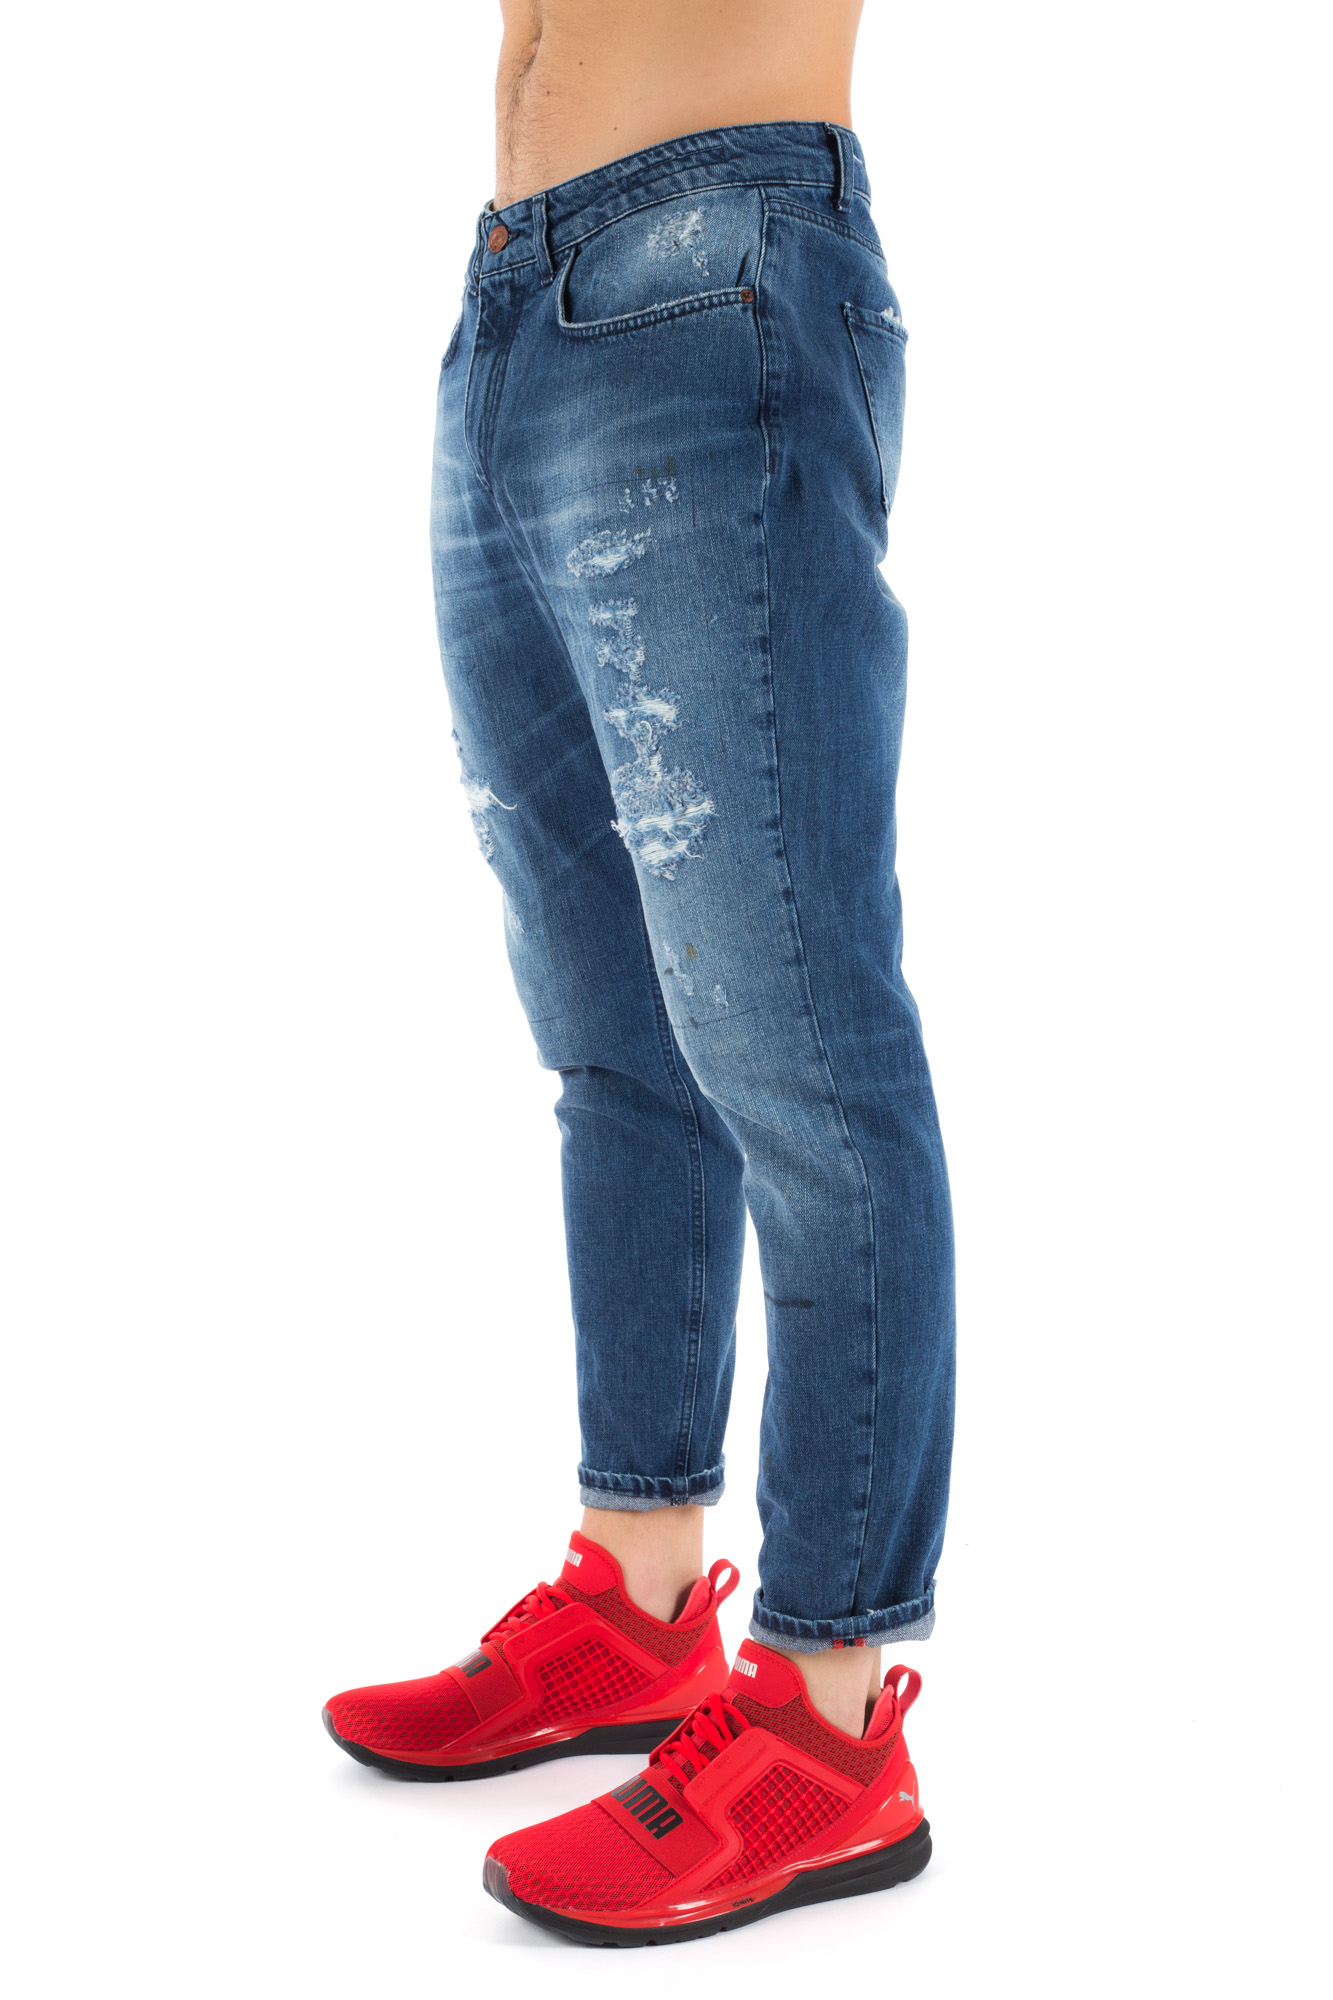 Derrière - Medium stonewash jeans with ripps